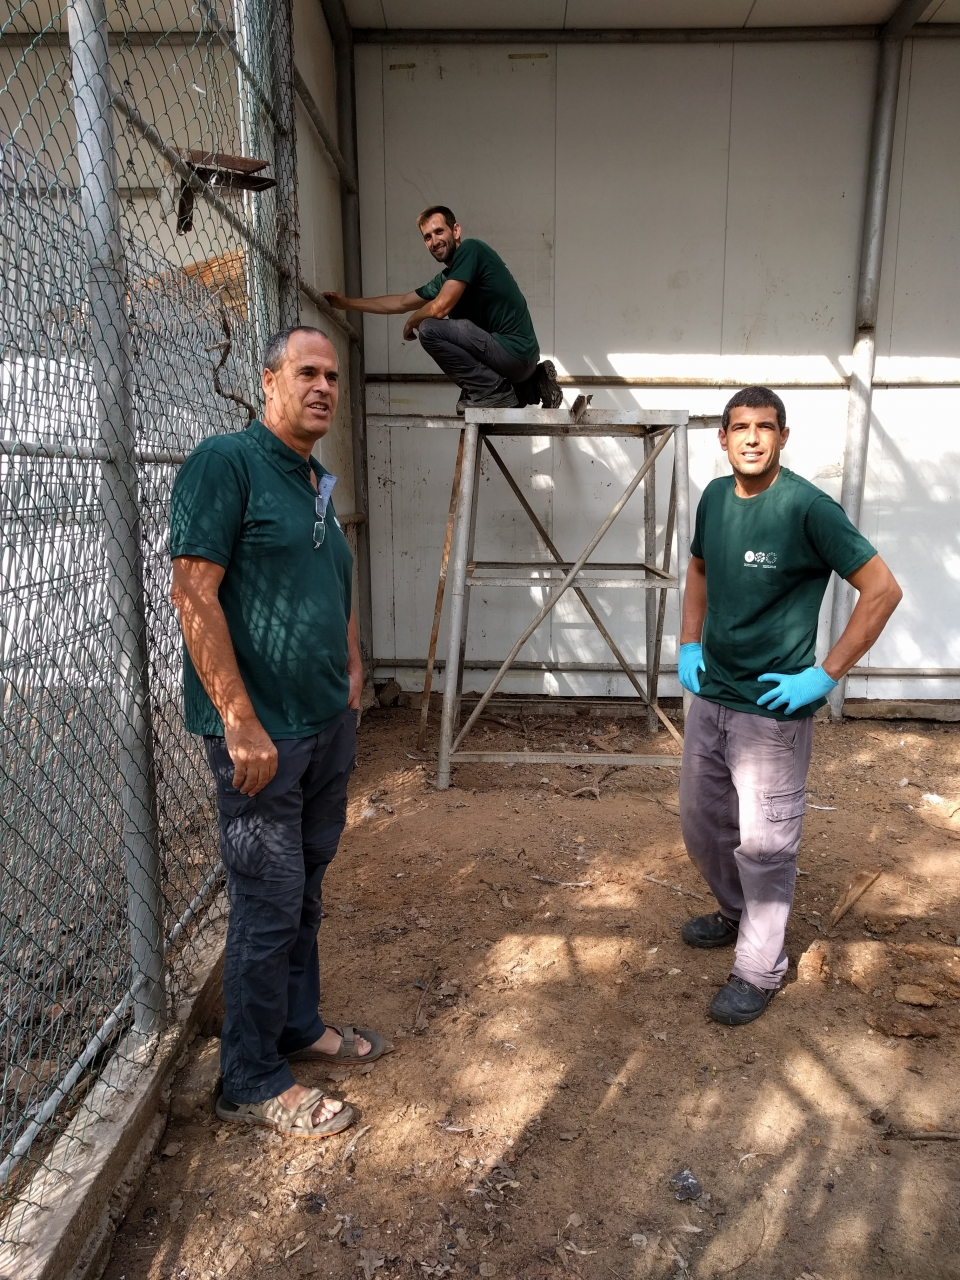 Hadar, Emanuel and Ron, wearing the new staff shirts, renovating the vulture exhibition